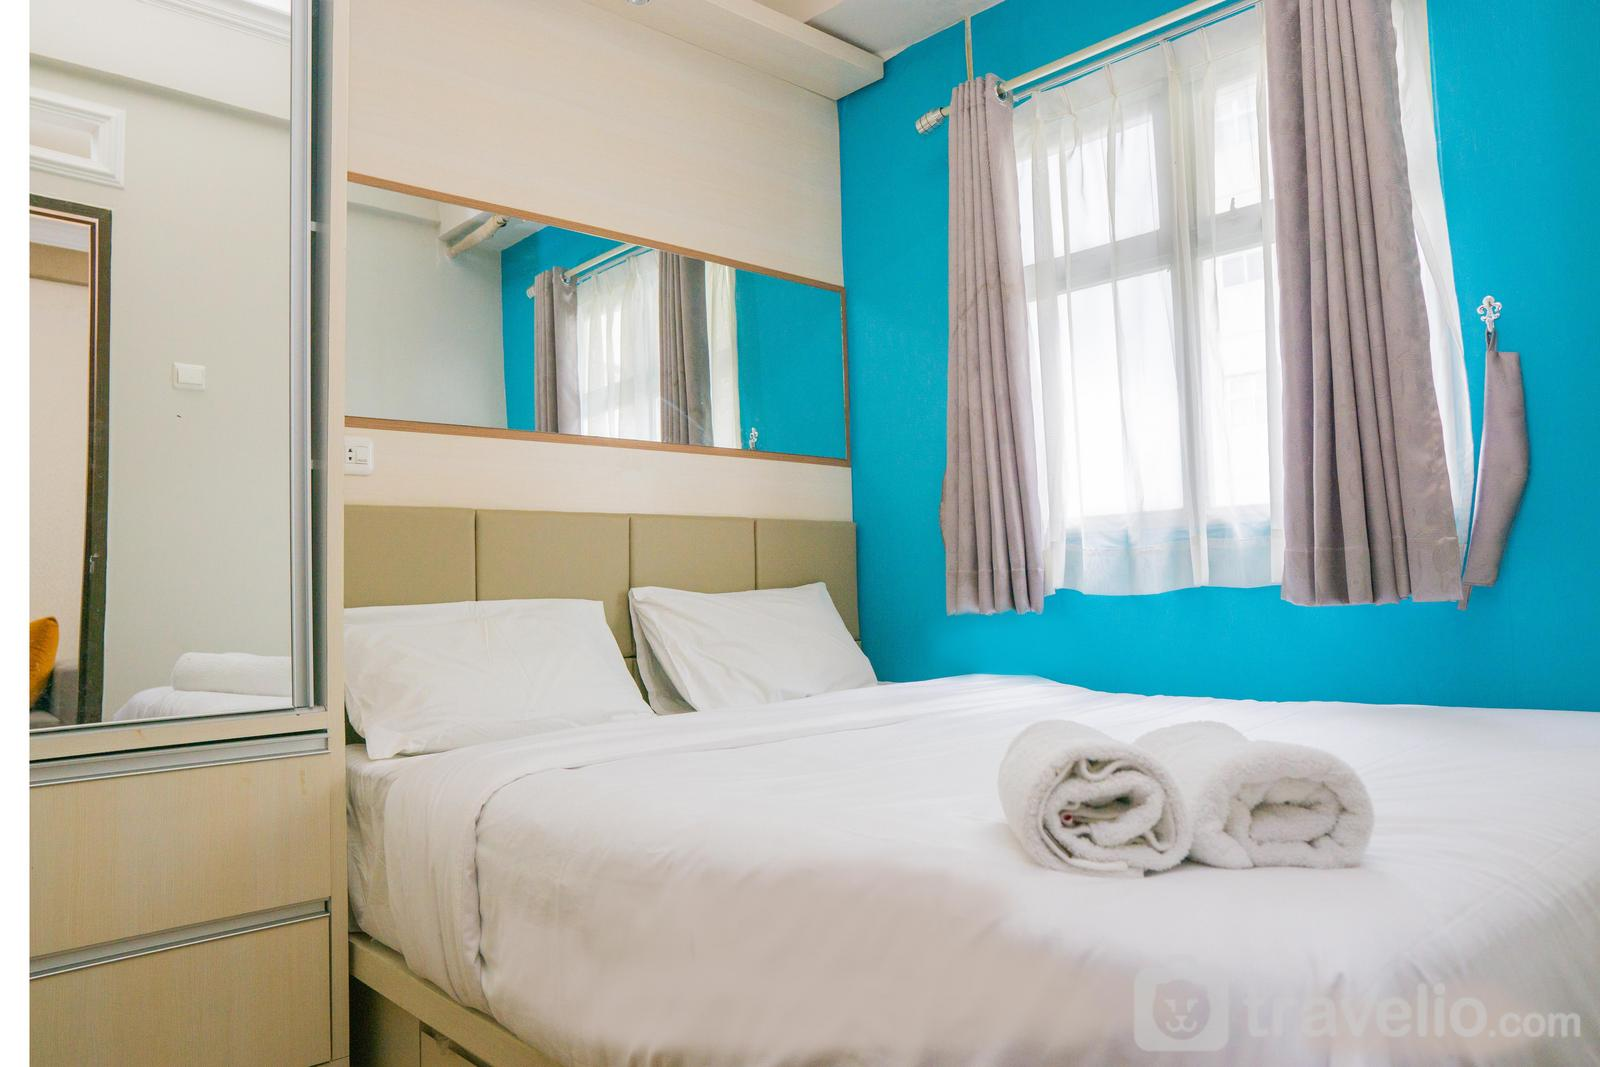 The Suites @Metro - Simply 2BR The Suite @ Metro By Travelio